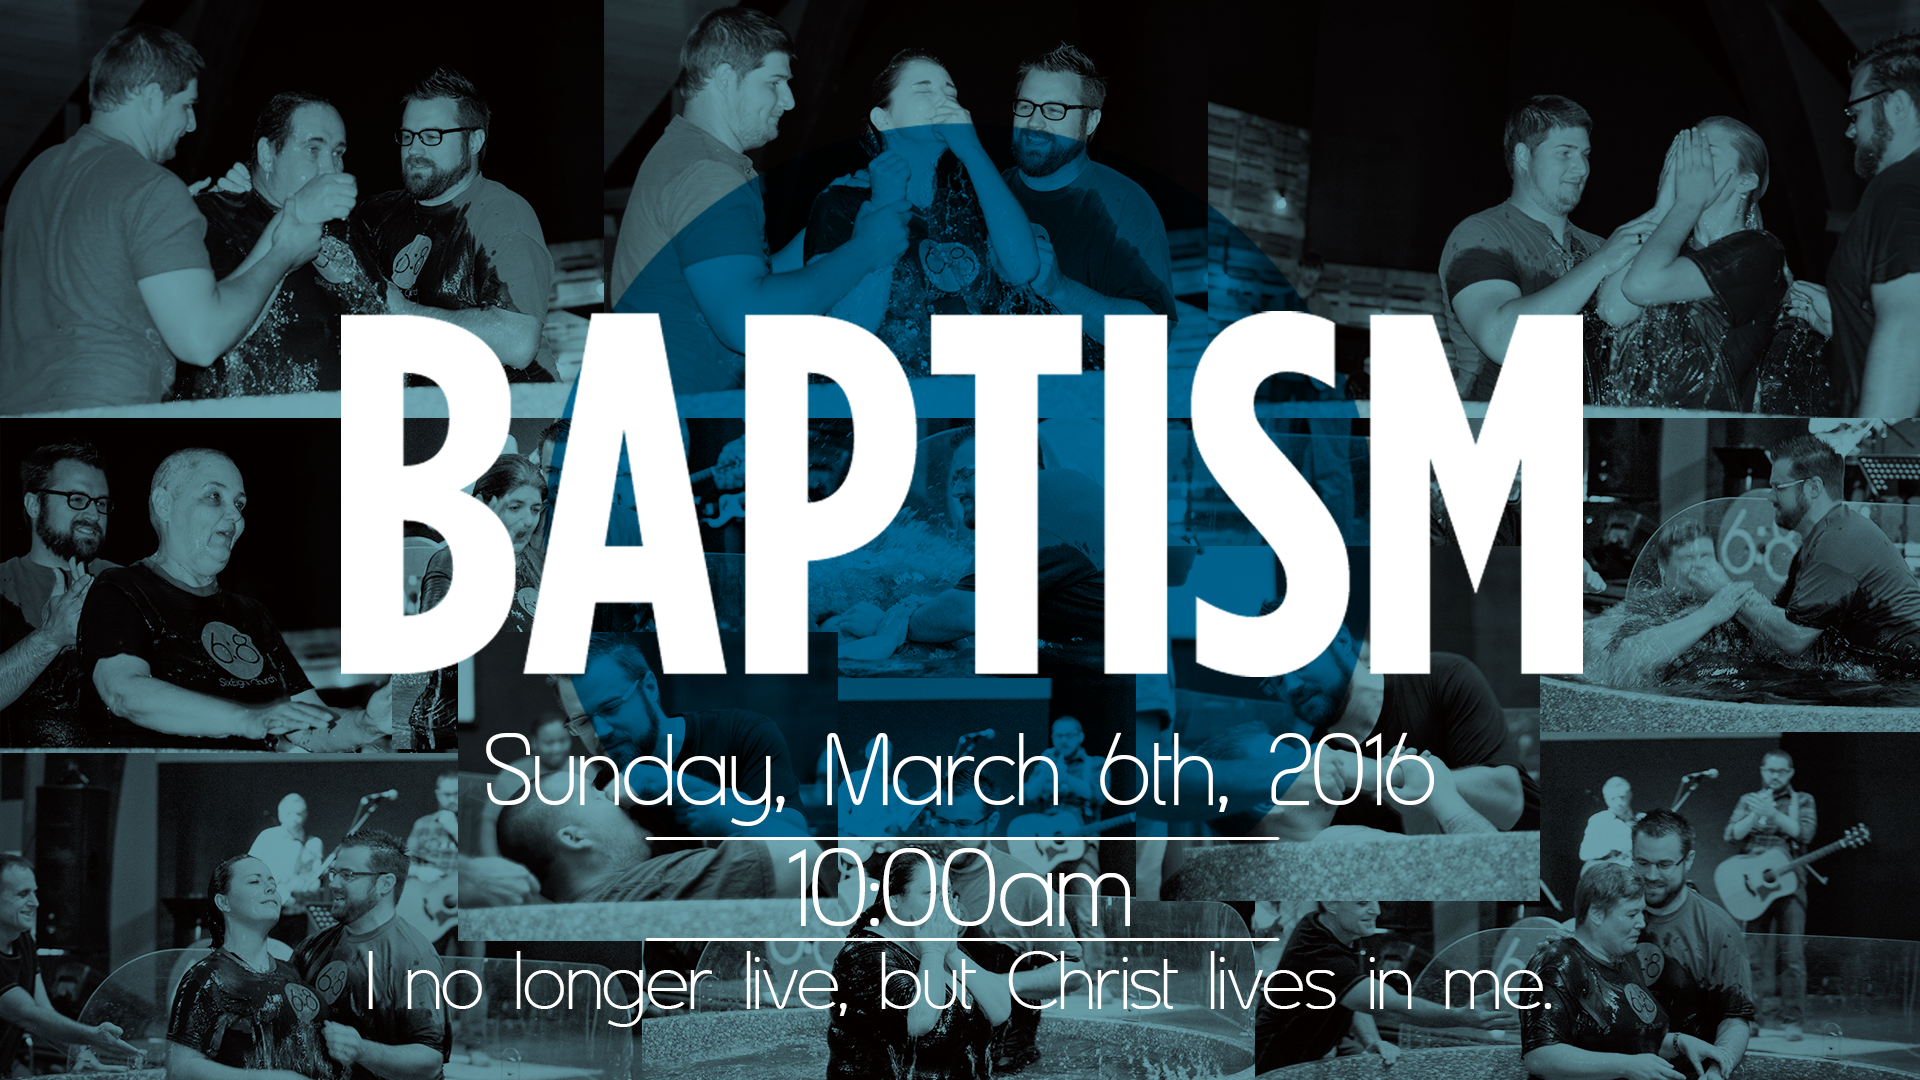 Baptism Sunday, March 6, 2016